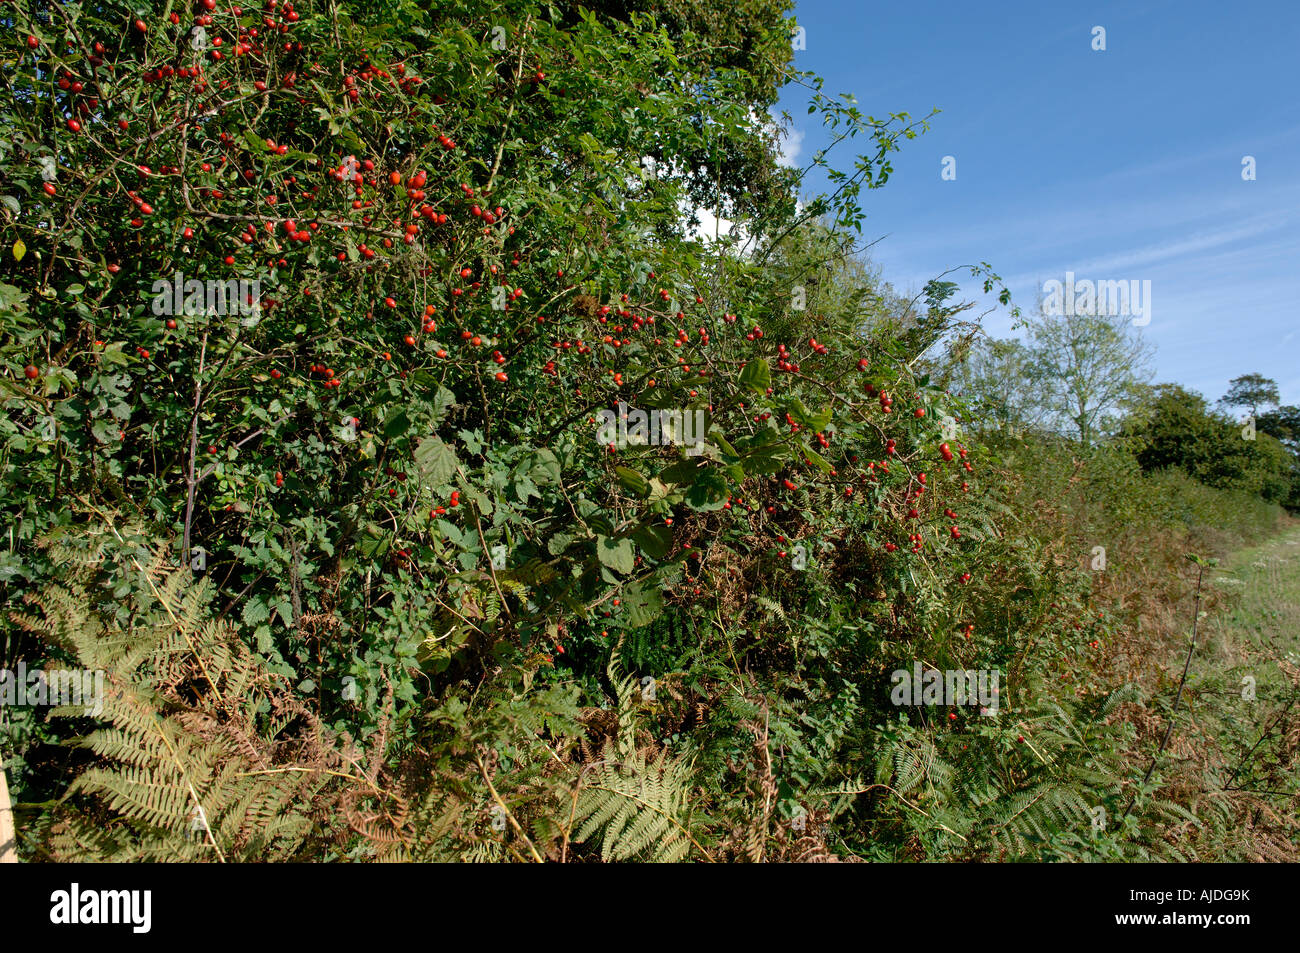 Rose hips bracken hedgerow plants trees in a Devon hedgerow in autumn - Stock Image